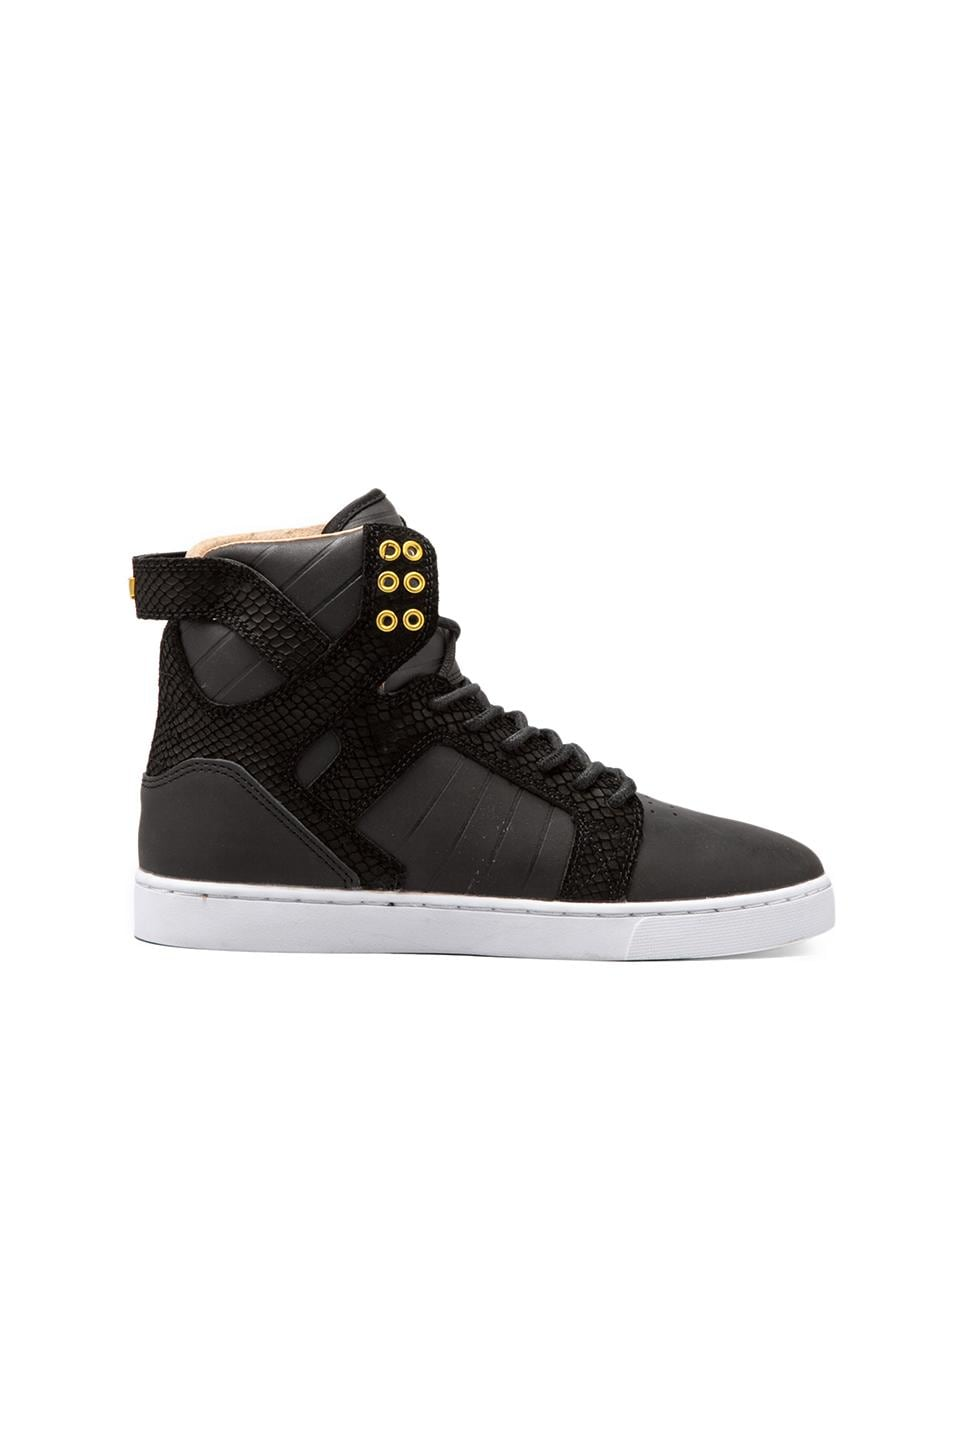 Supra Skytop LX in Black/Gold